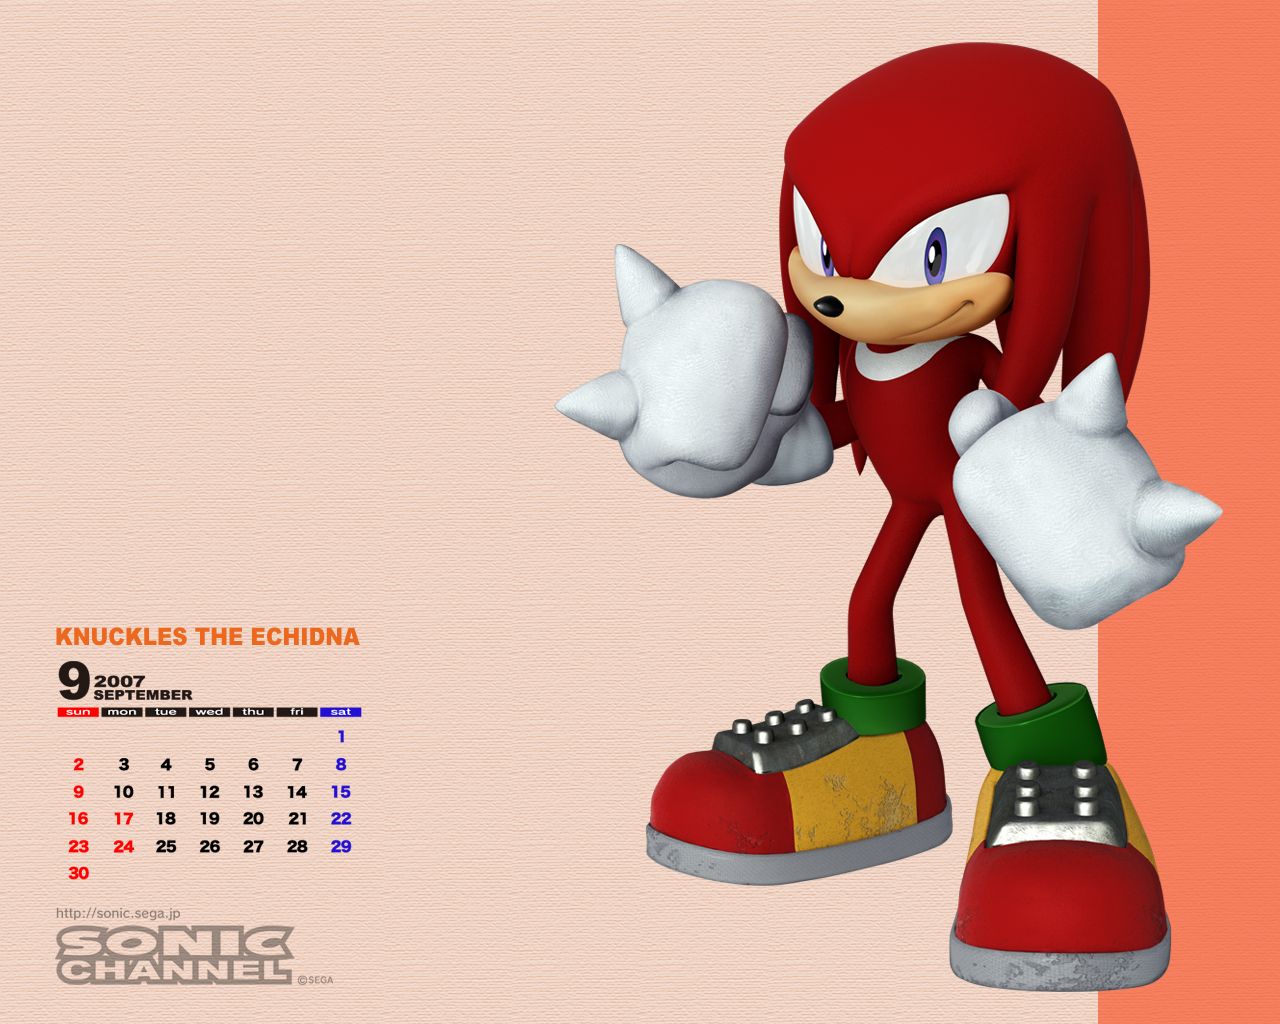 Knuckles #3